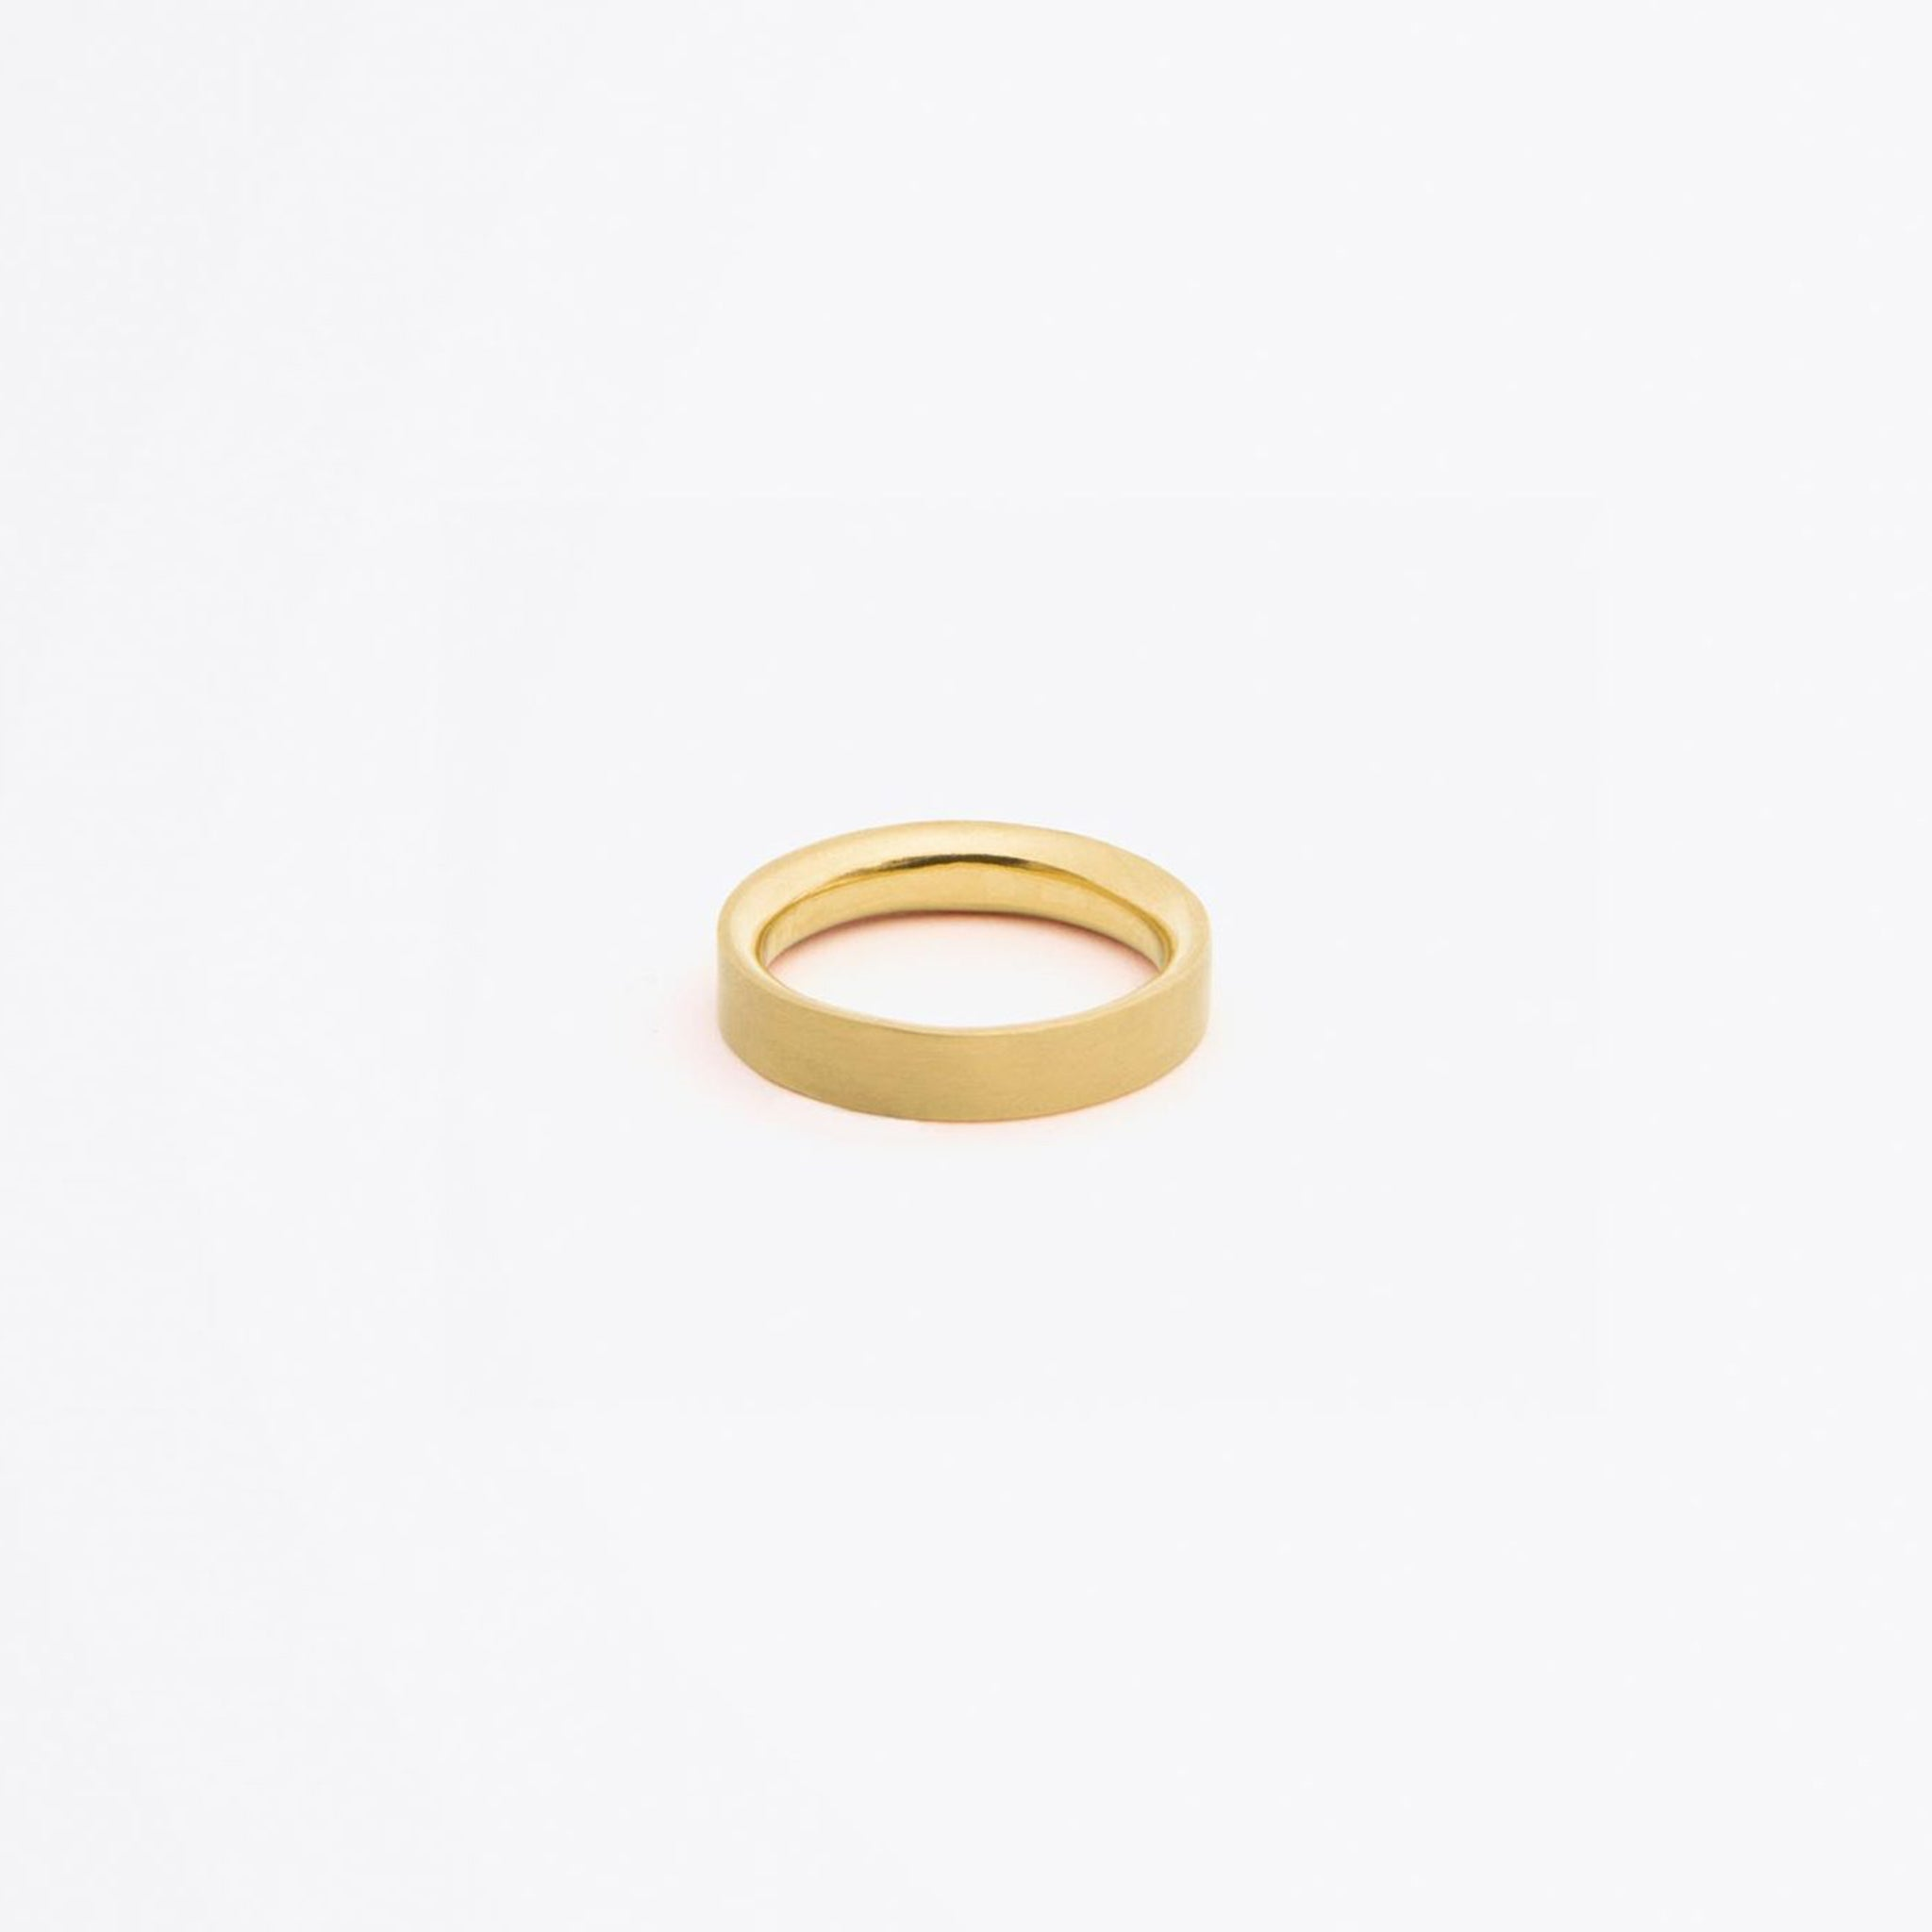 Wanderlust Life Ethically Handmade jewellery made in the UK. Minimalist gold and fine cord jewellery. brushed gold band ring, nomad